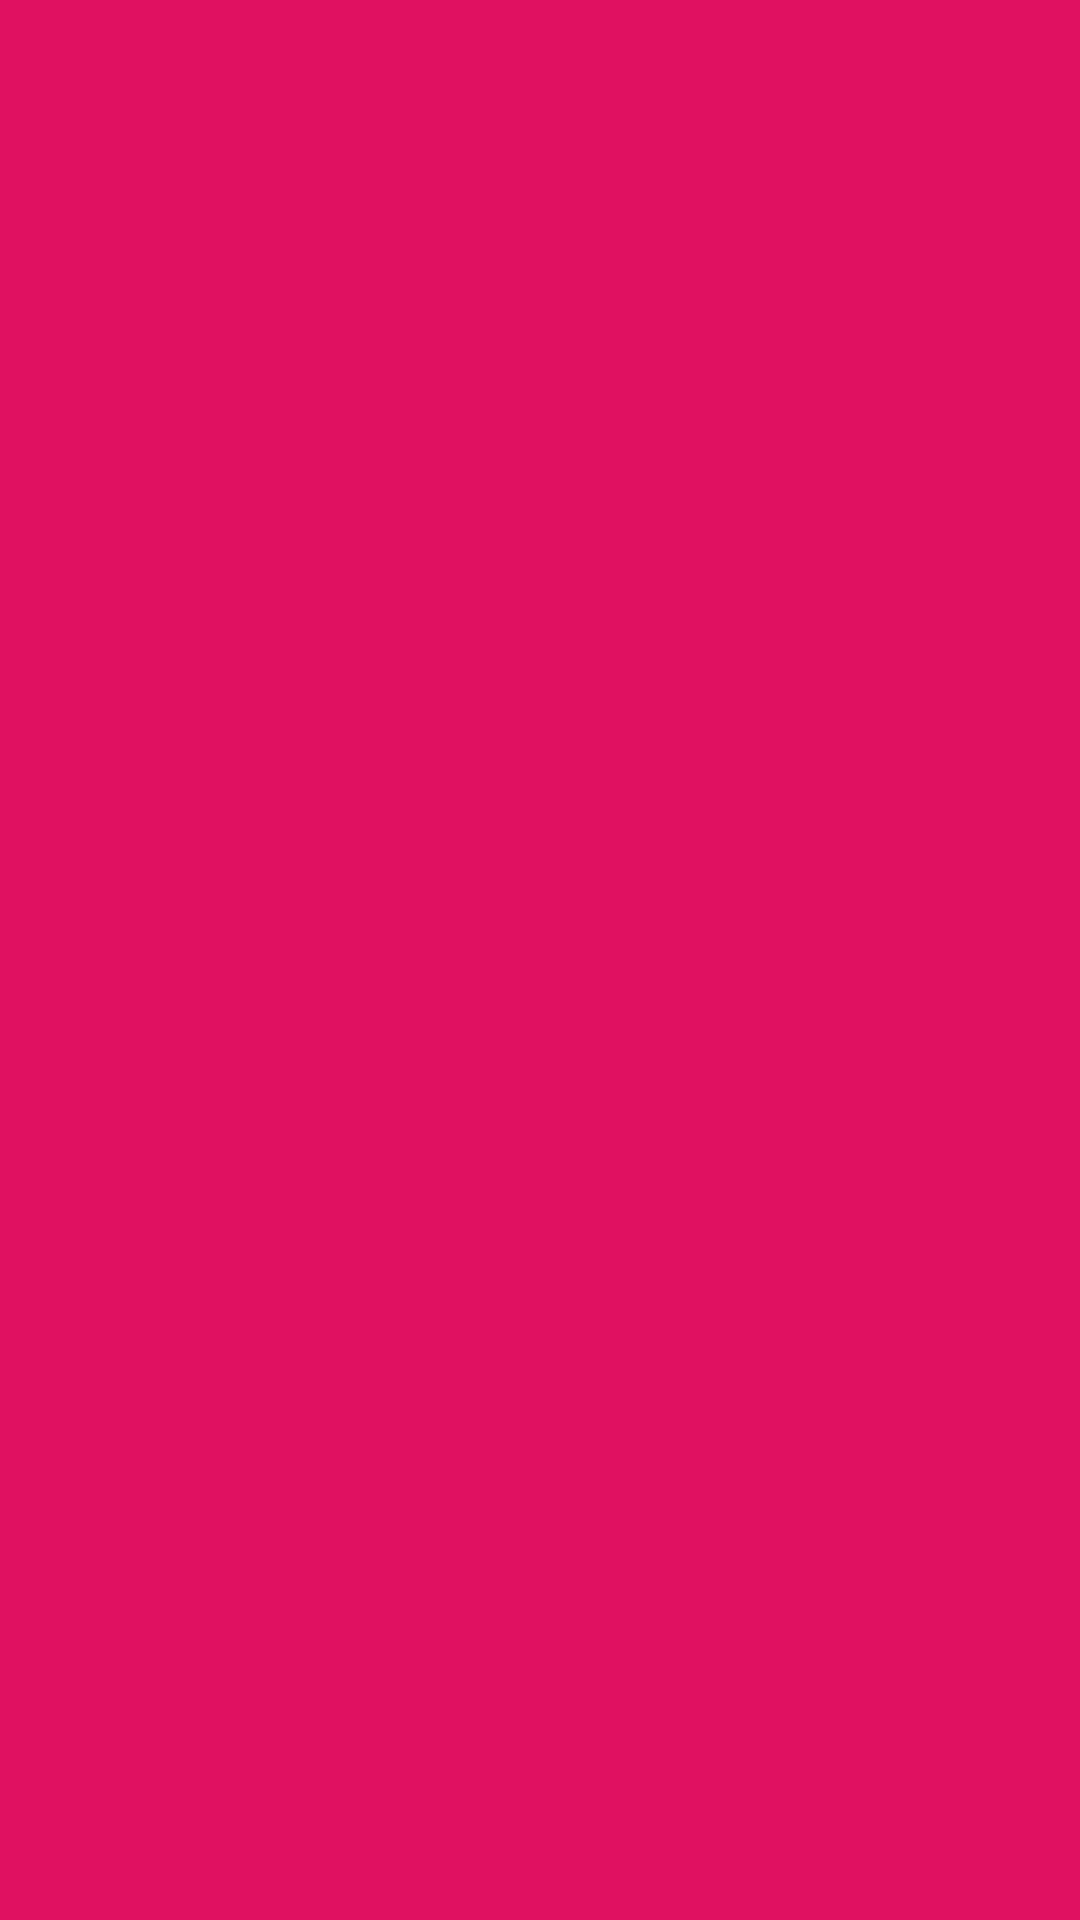 1080x1920 Ruby Solid Color Background